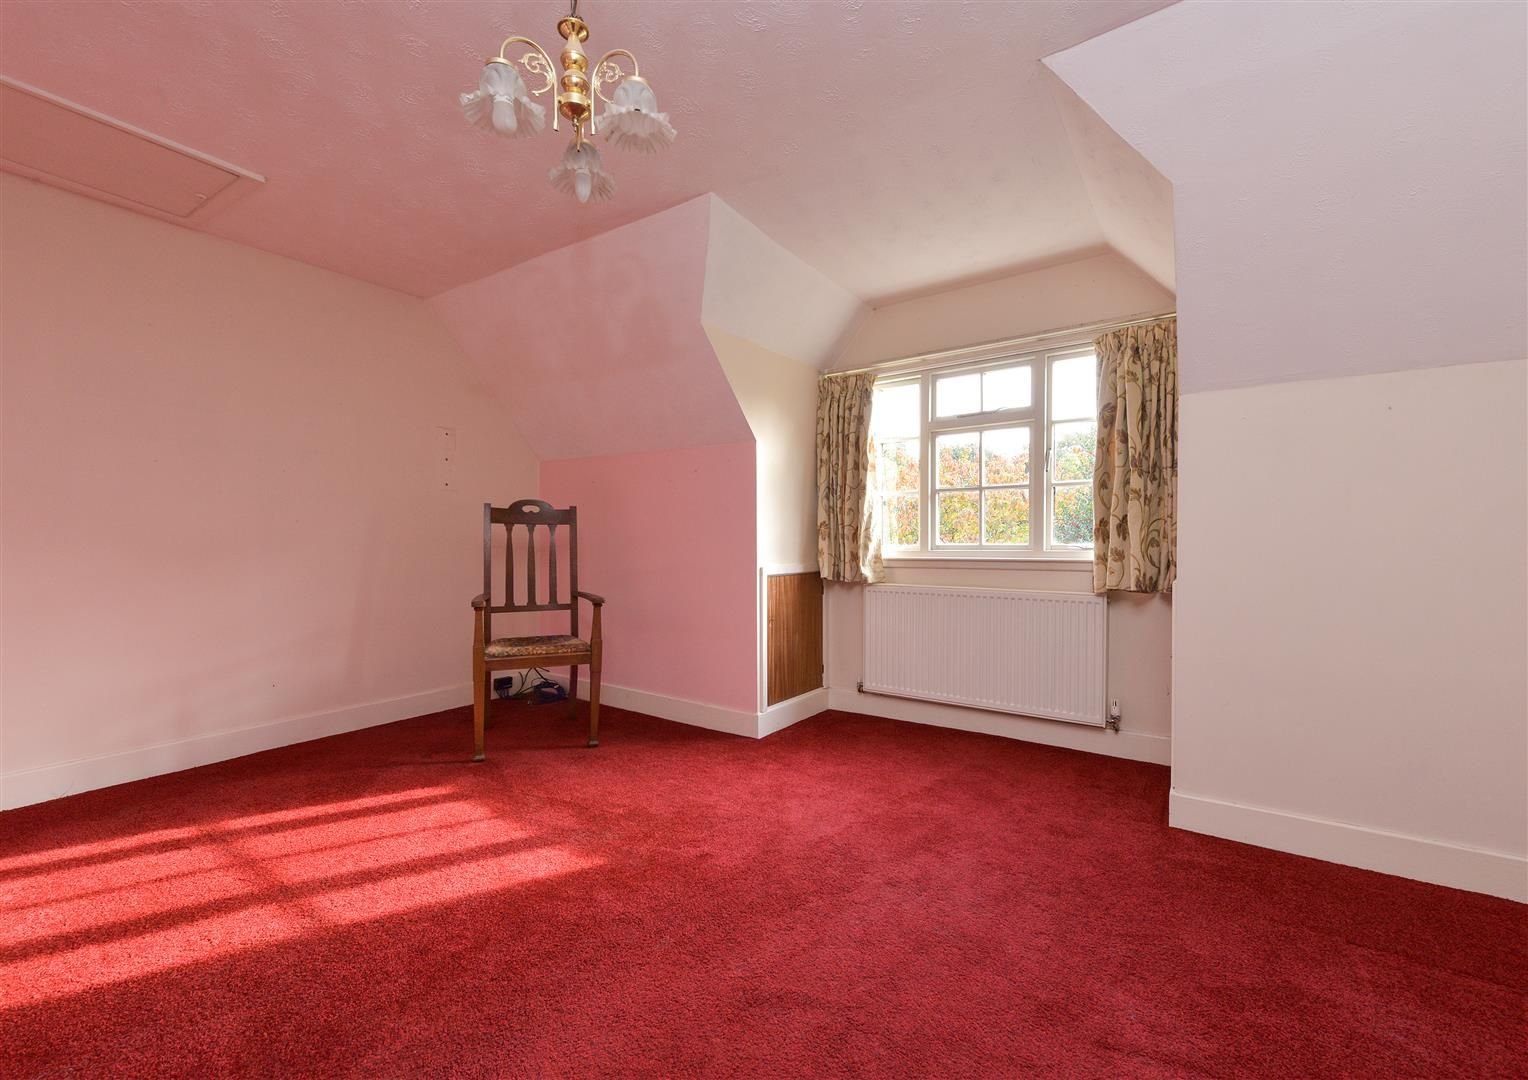 3 bed detached for sale in Wolverley  - Property Image 10